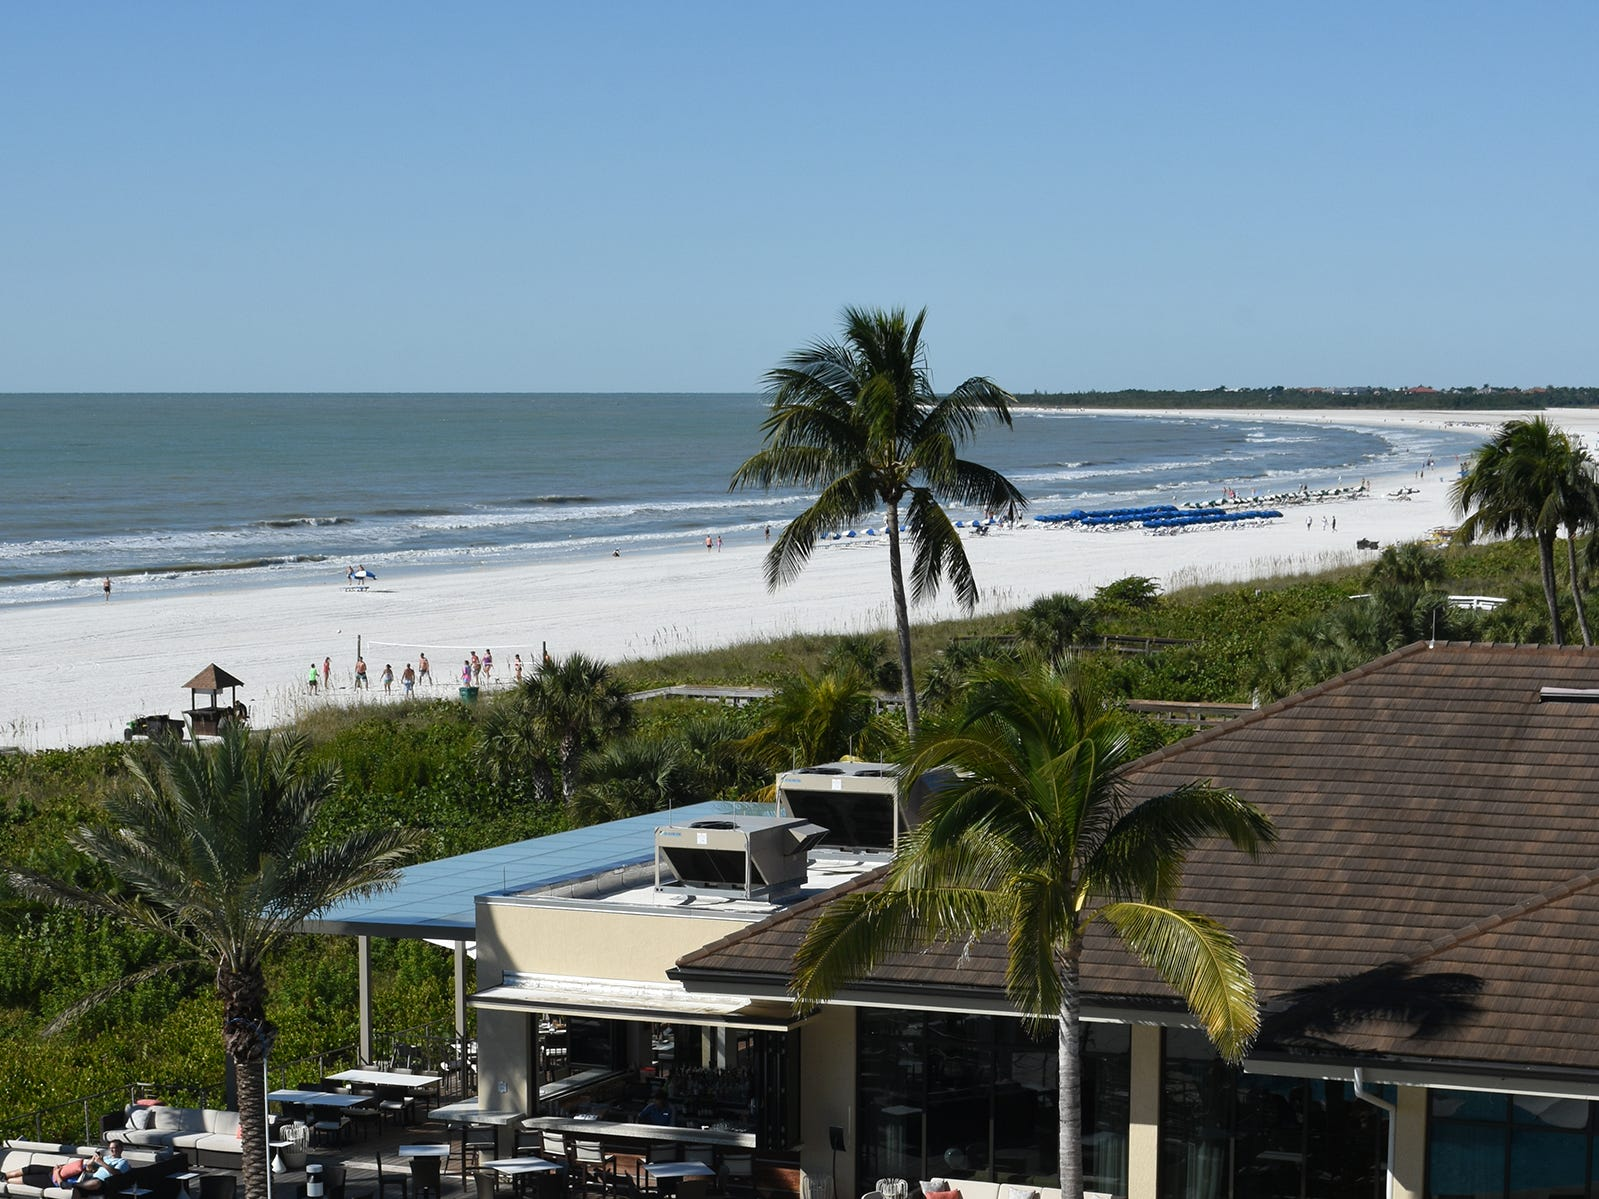 One thing that hasn't changed at the Hilton is the view. The Hilton Marco Island Beach Resort & Spa has reopened for guests, in time for Thanksgivng and the upcoming winter season, following a 1.5-year $60 million renovation.